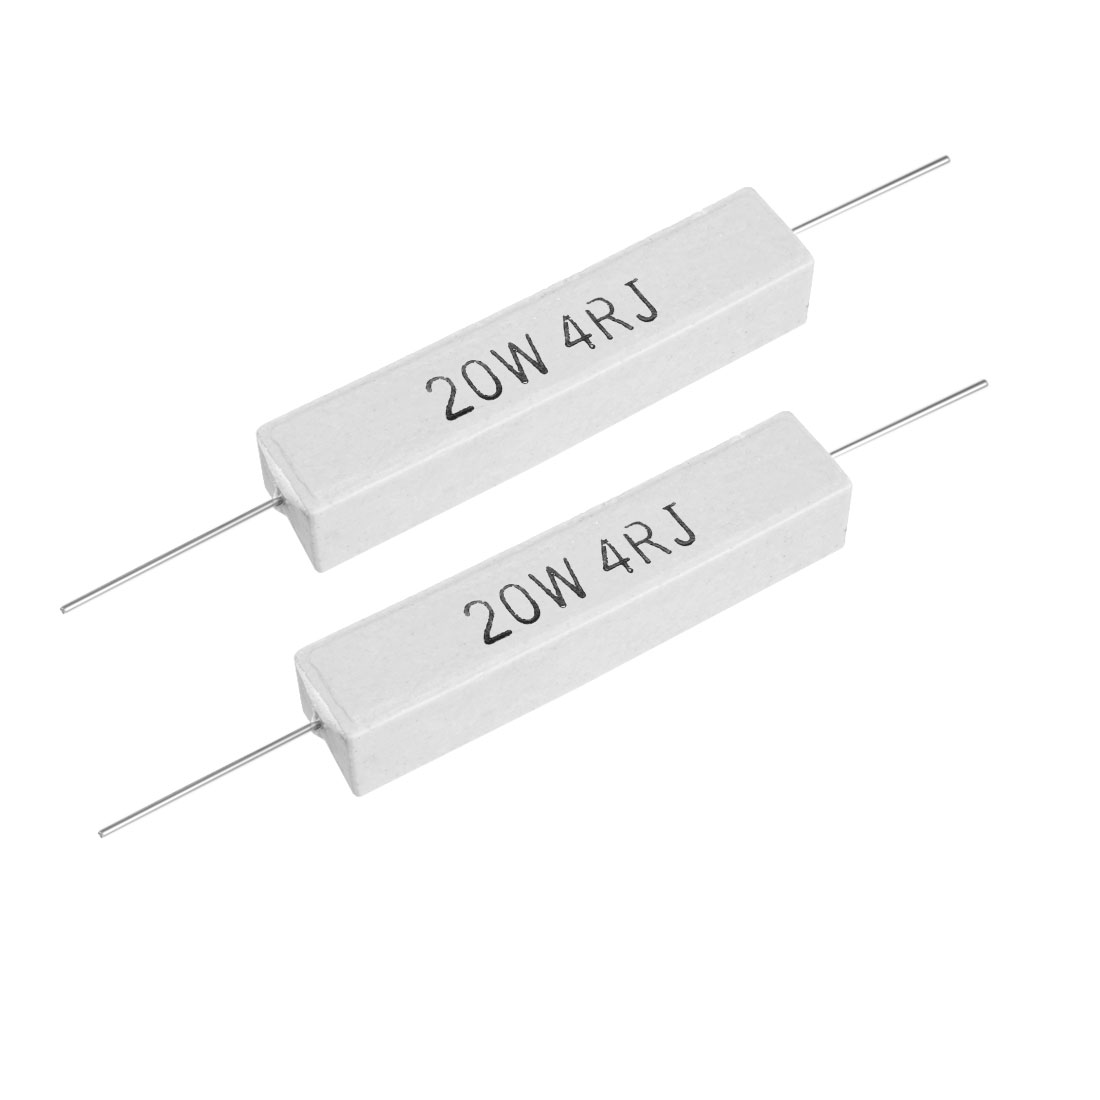 20W 4 Ohm Power Resistor Ceramic Cement Resistor Axial Lead White 2pcs